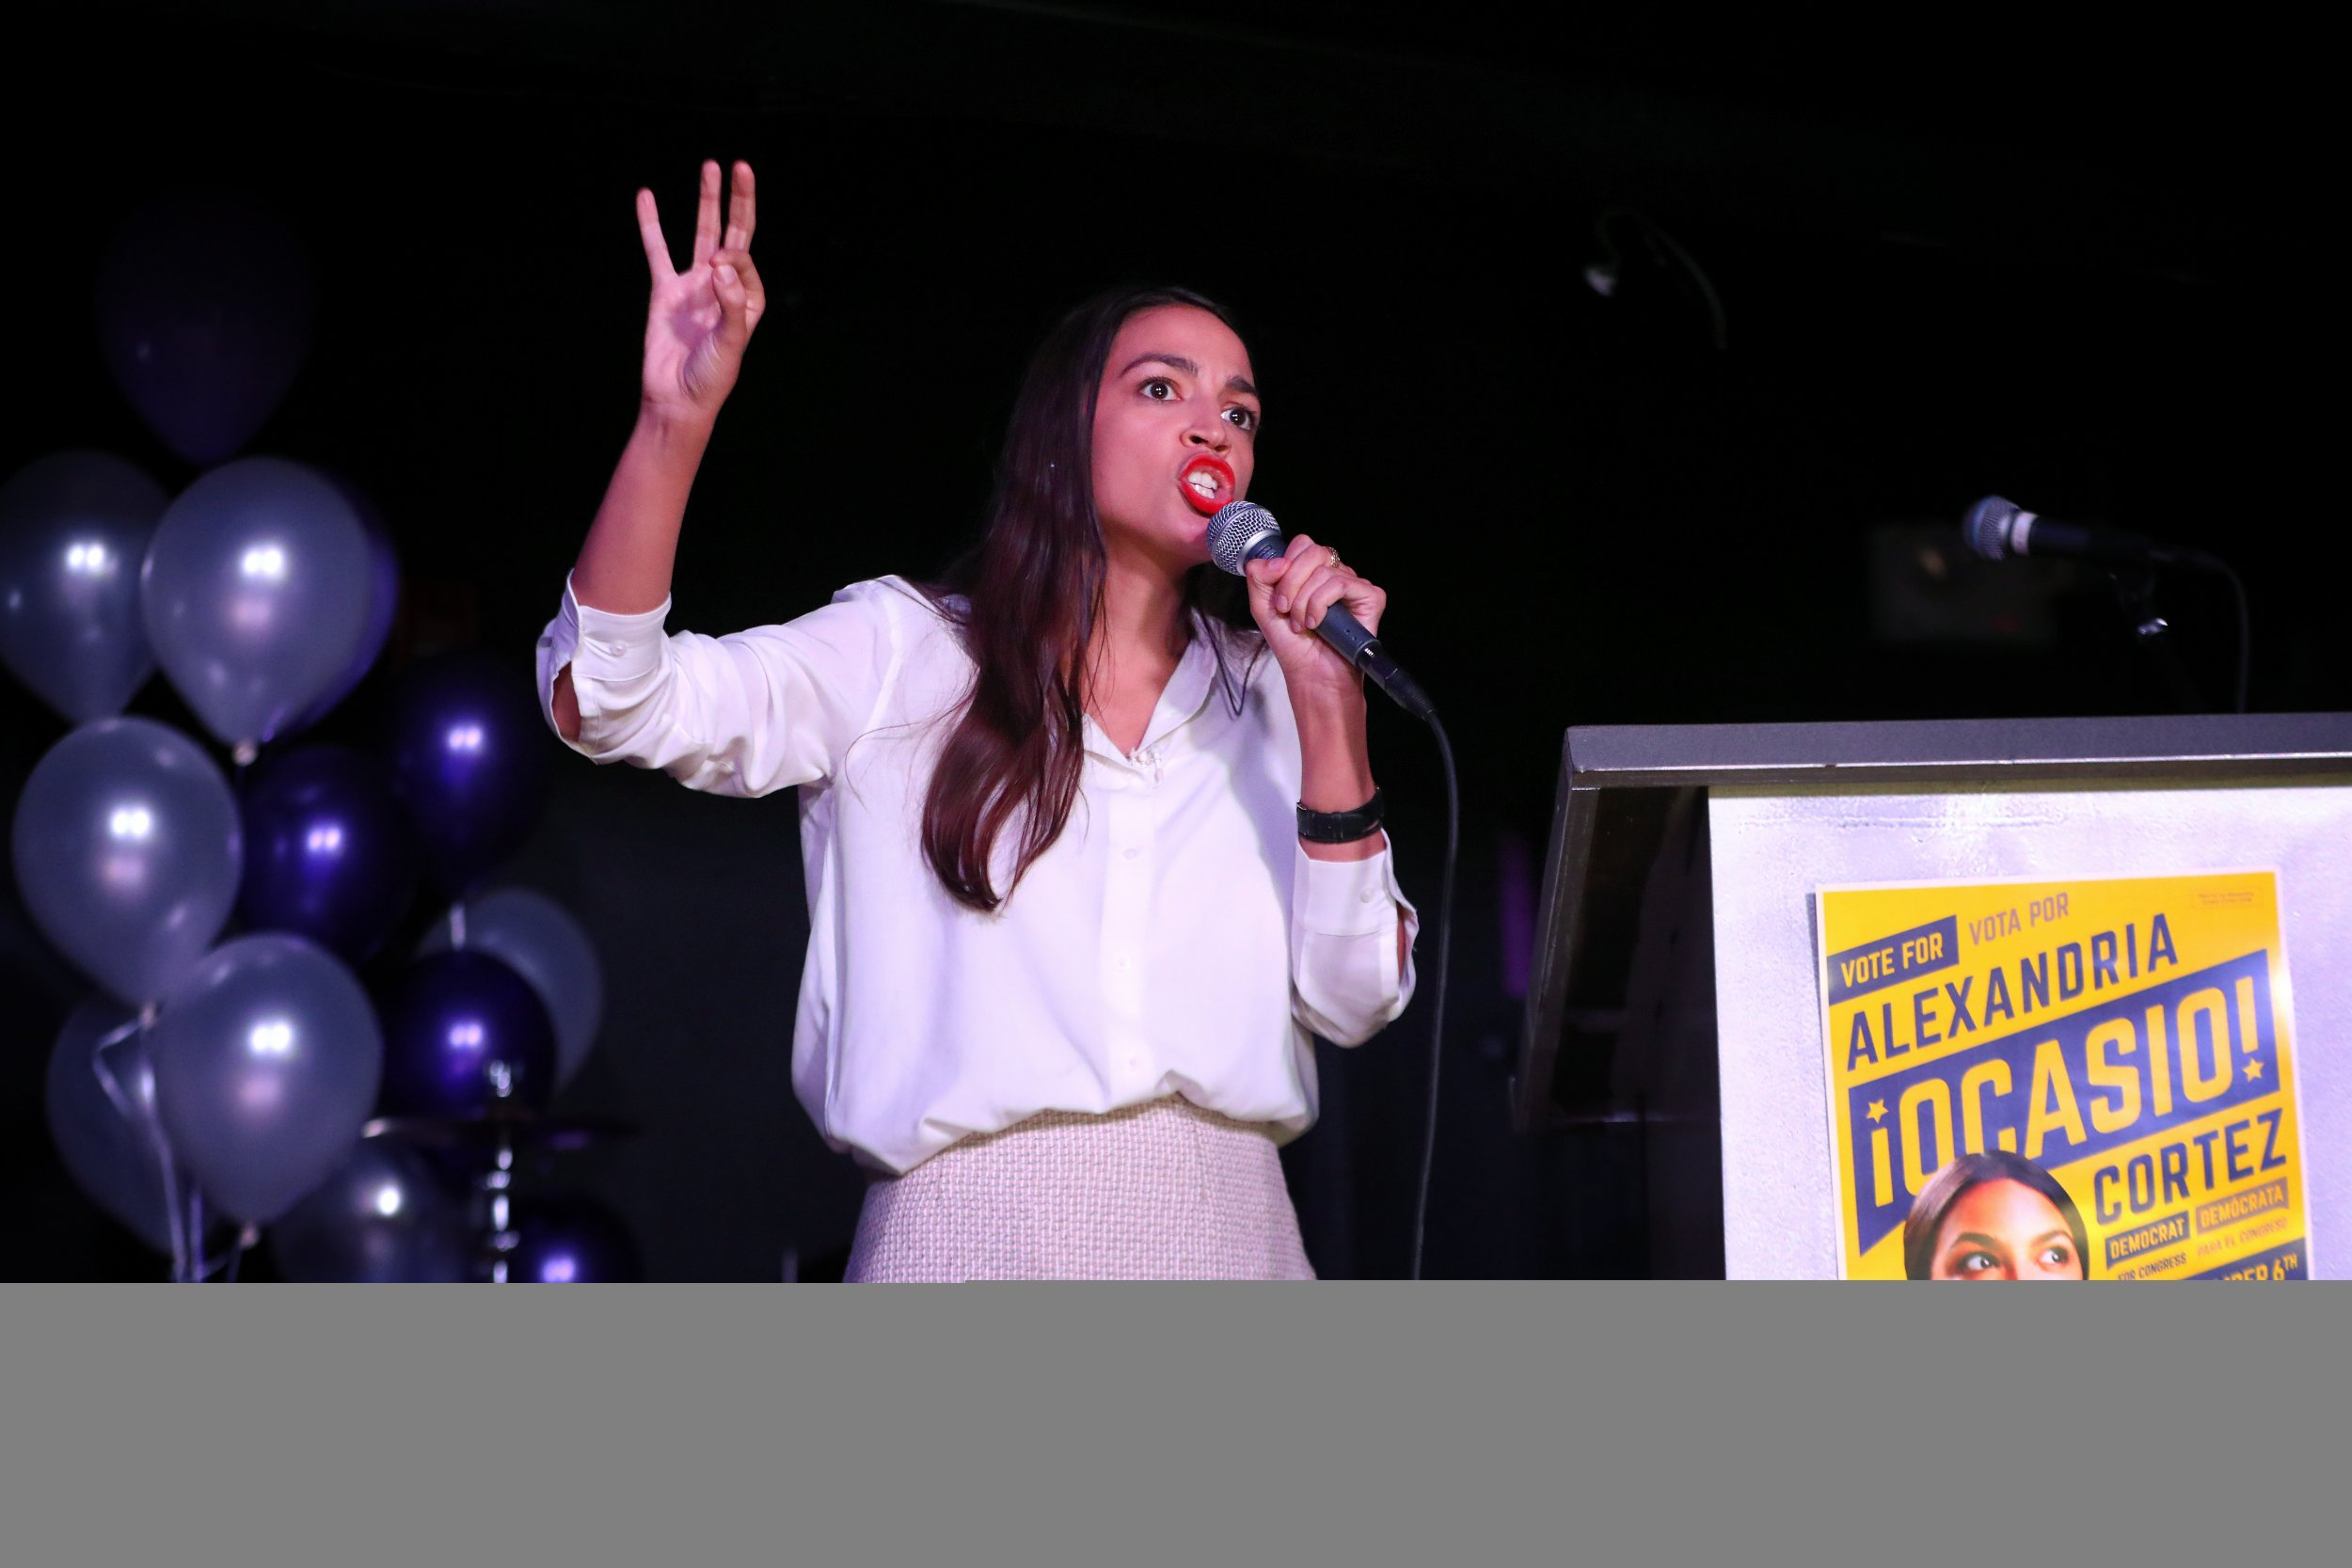 Alexandria Ocasio-Cortez columbus day, election day